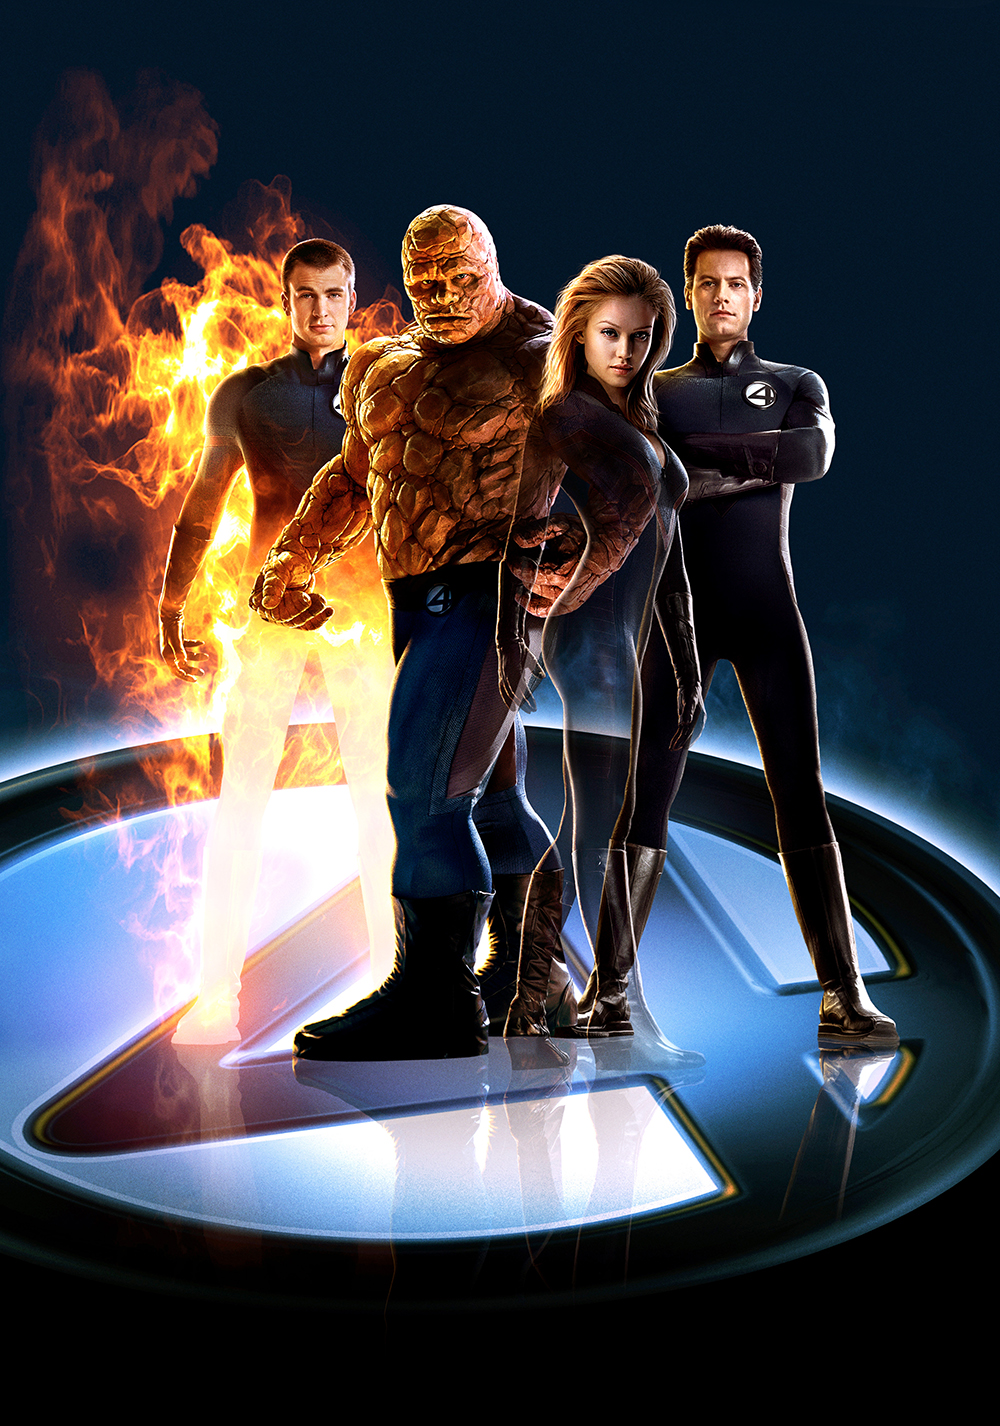 File:Fantastic-four-movie crop.jpg